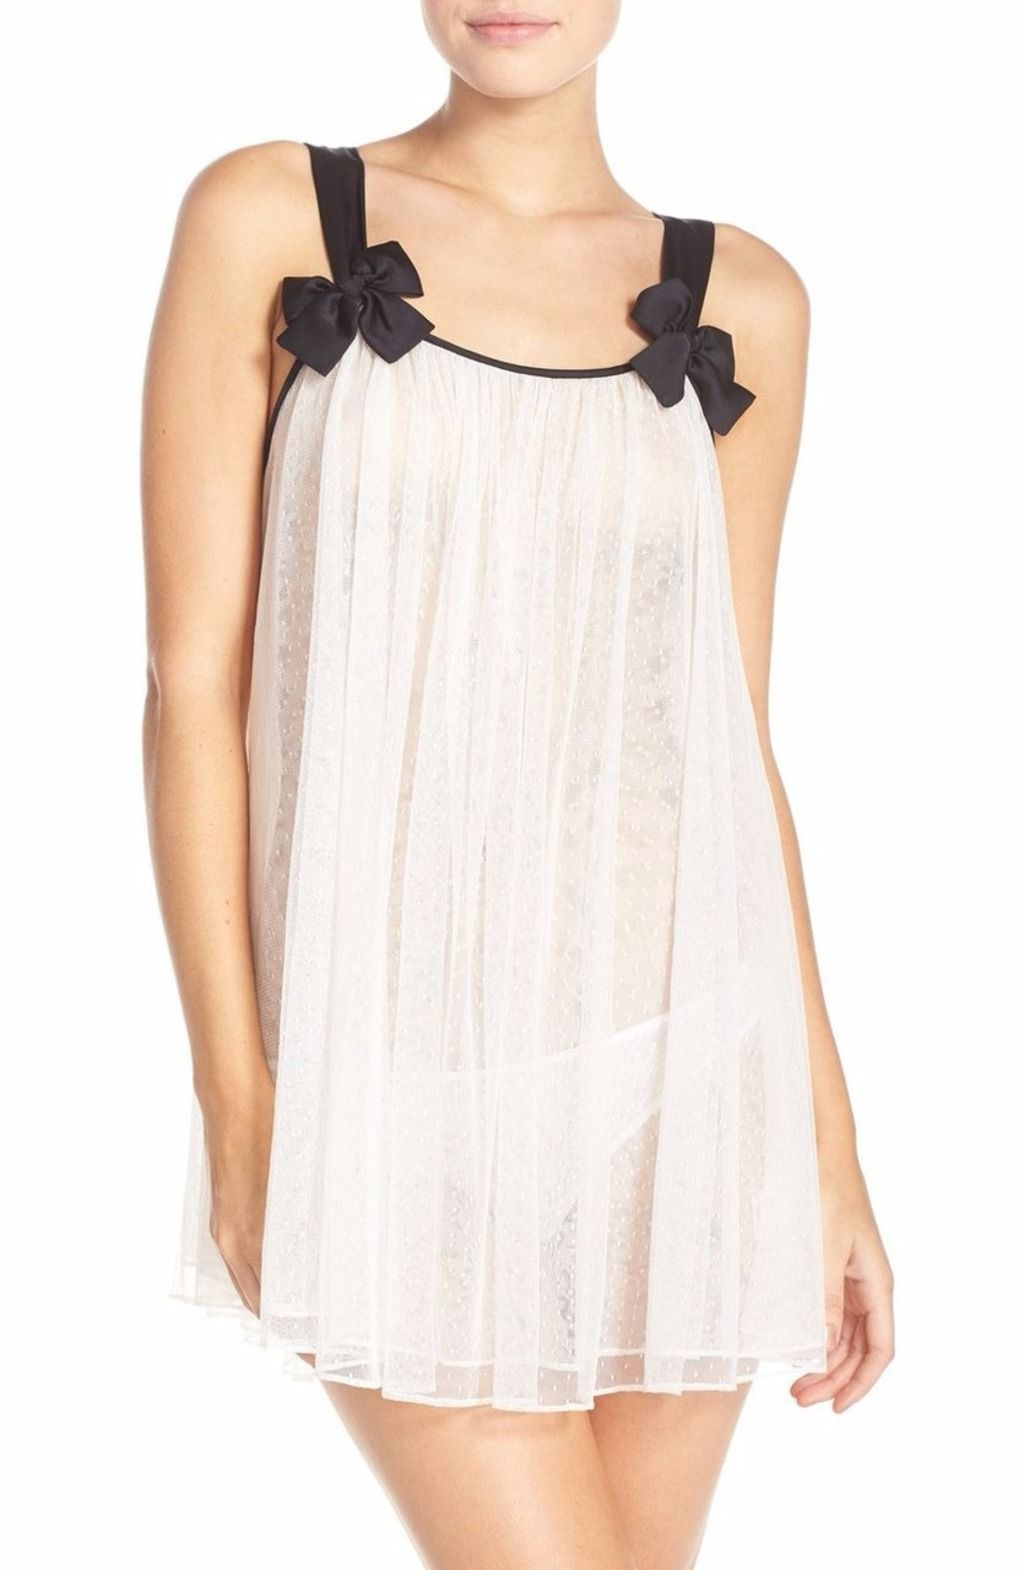 49f953409d4 kate spade new york Mesh Babydoll Chemise   Briefs Ivory  79 - PICK UP OR  SHIPS FREE WORLDWIDE! BET PRICE GUARANTEE - MAJOR CREDIT CARDS ACCEPTED -  SHOP OUR ...